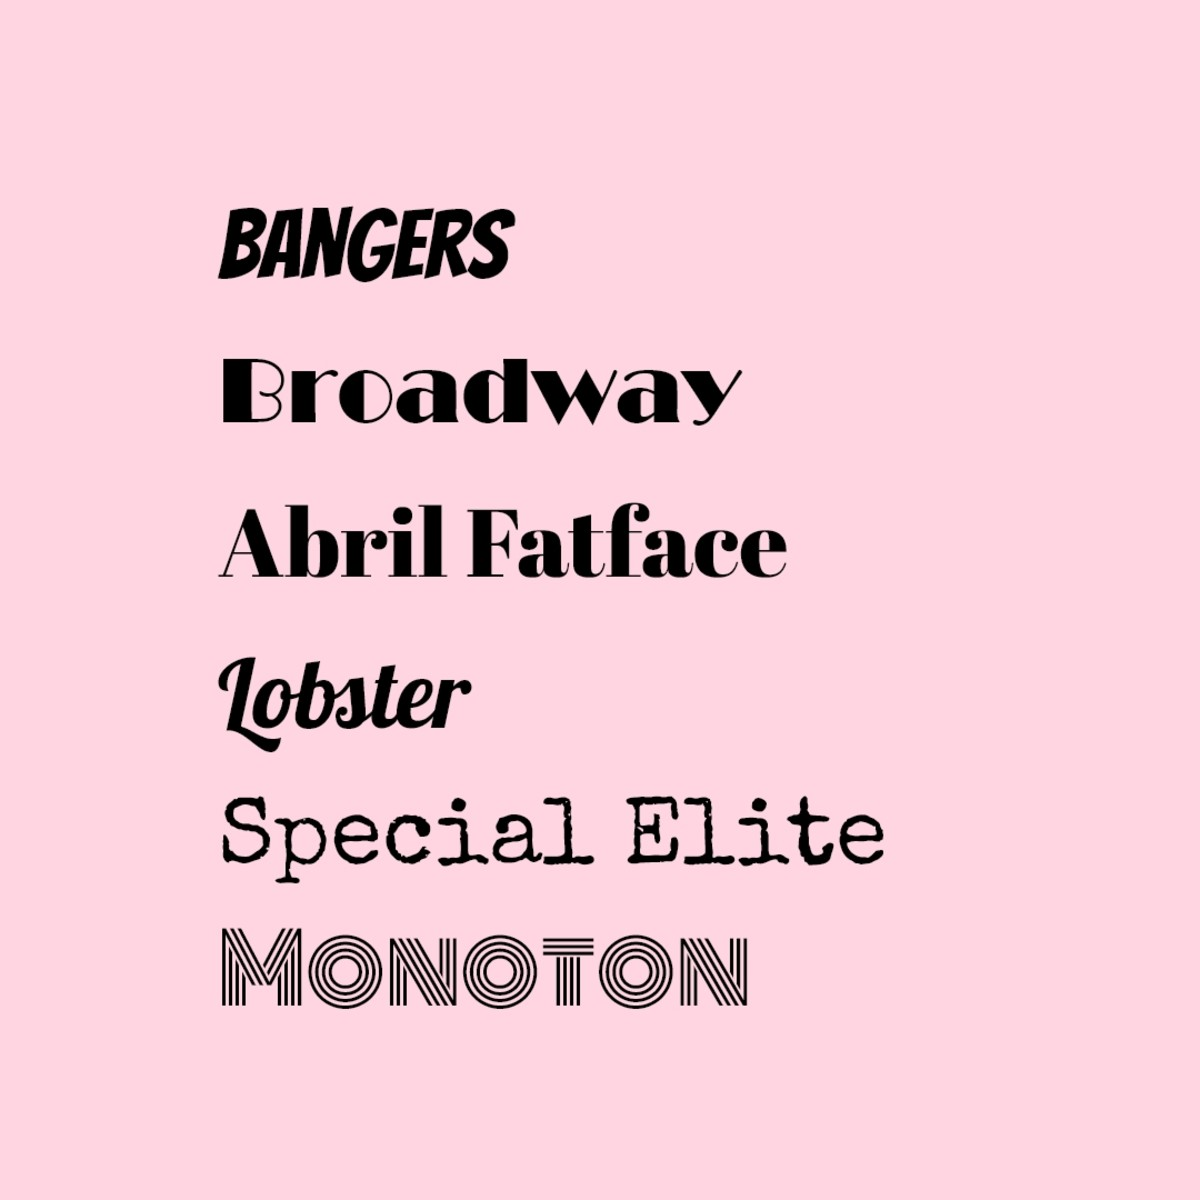 Here are some examples of Display/Decorative typefaces (the typefaces in the photo are in the same size and style regular).